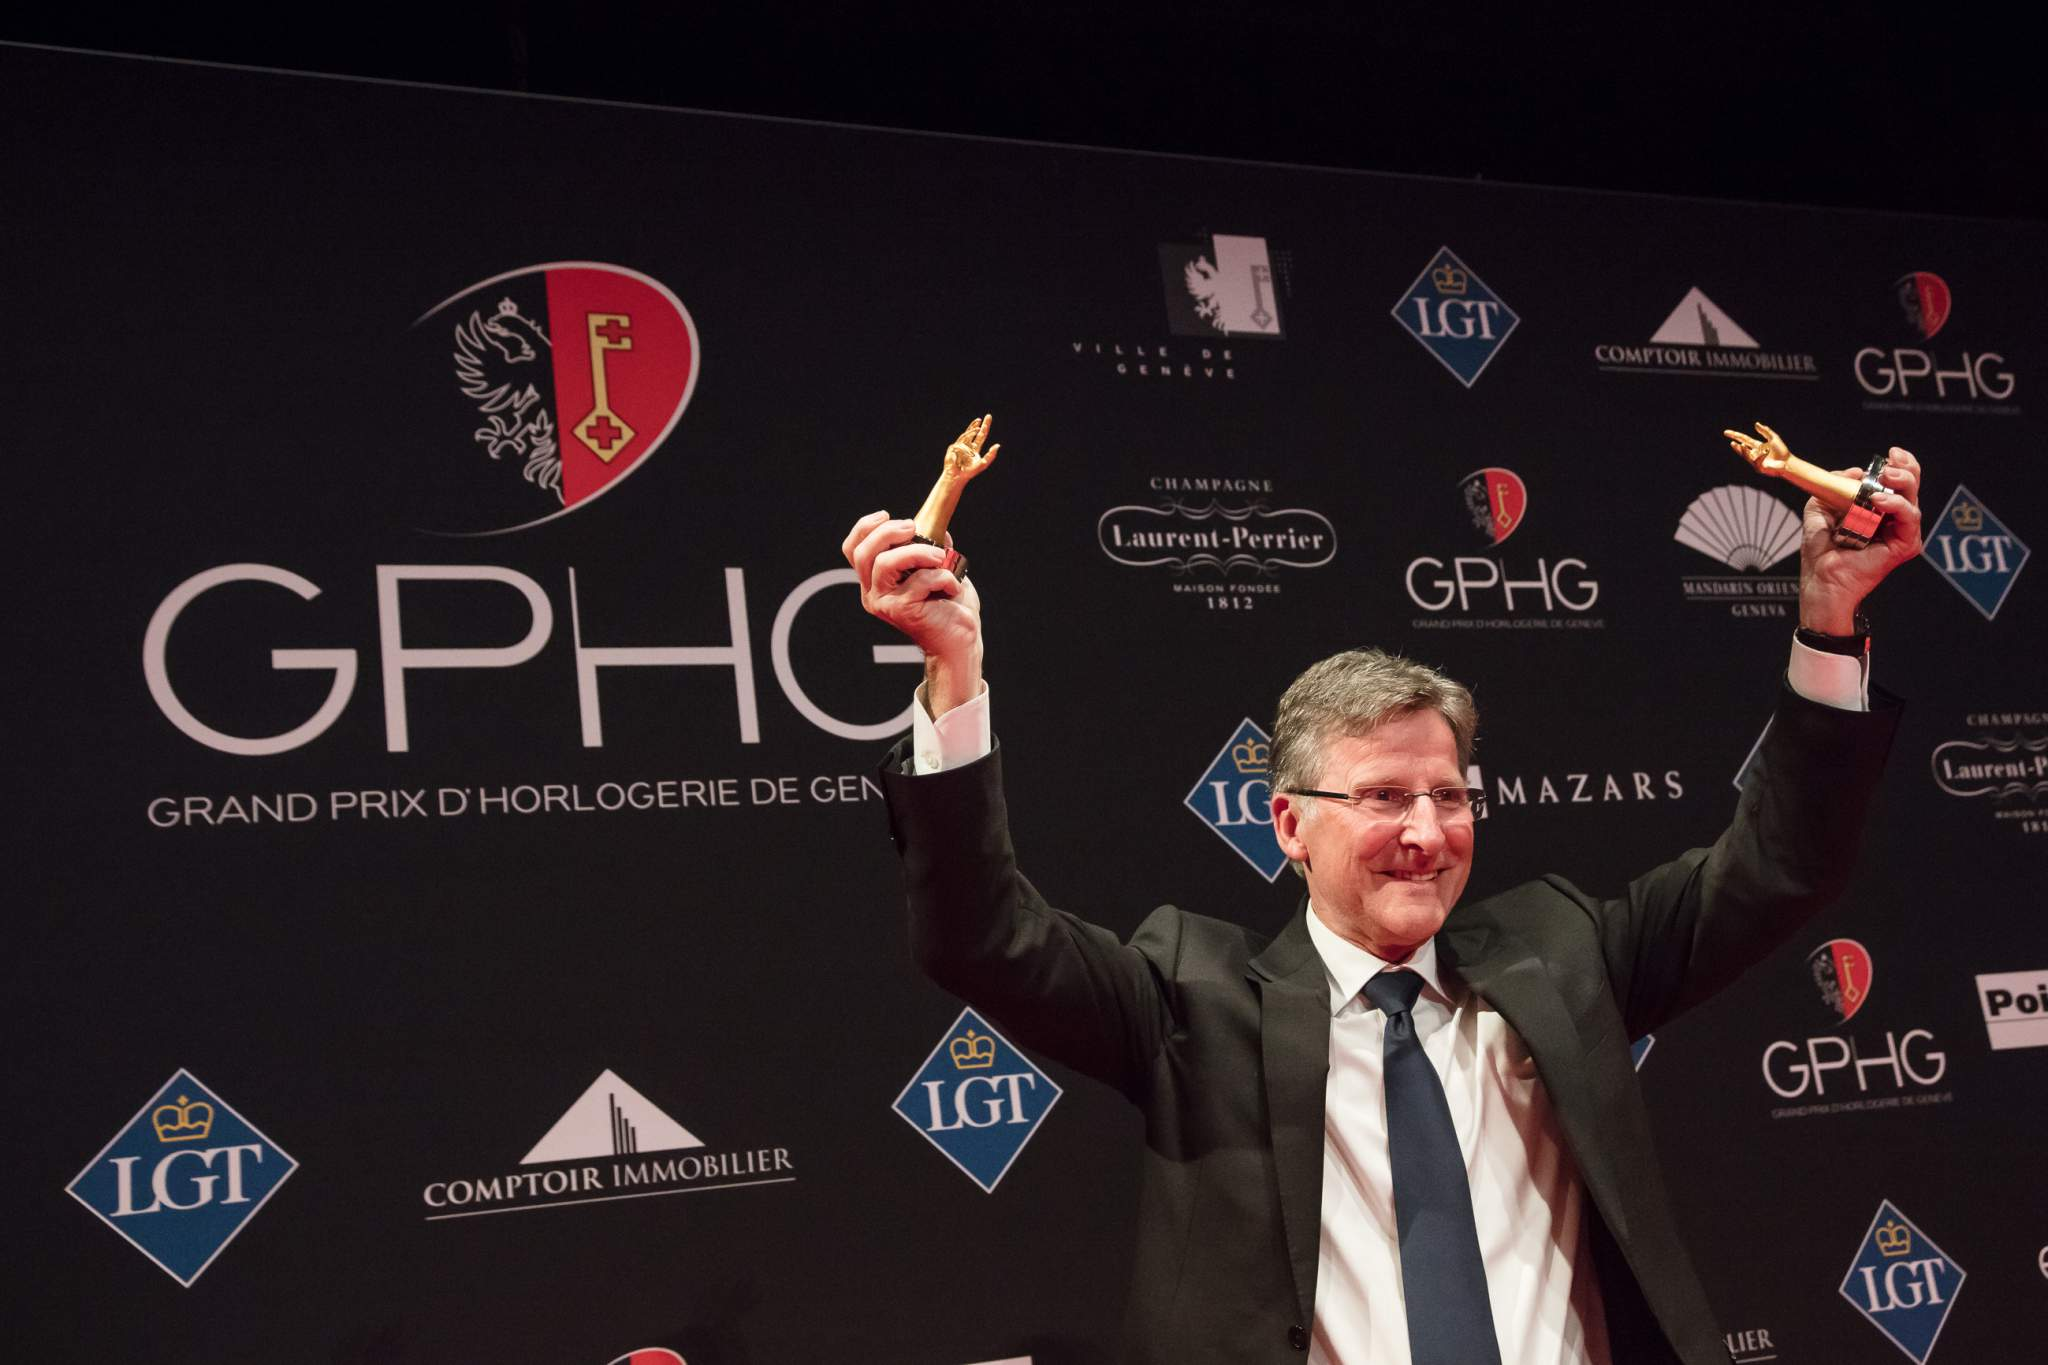 Michel Parmigiani (President and Founder of Parmigiani Fleurier, winner of the Travel Time Watch Prize 2017 and of the Chronograph Watch Prize 2017)